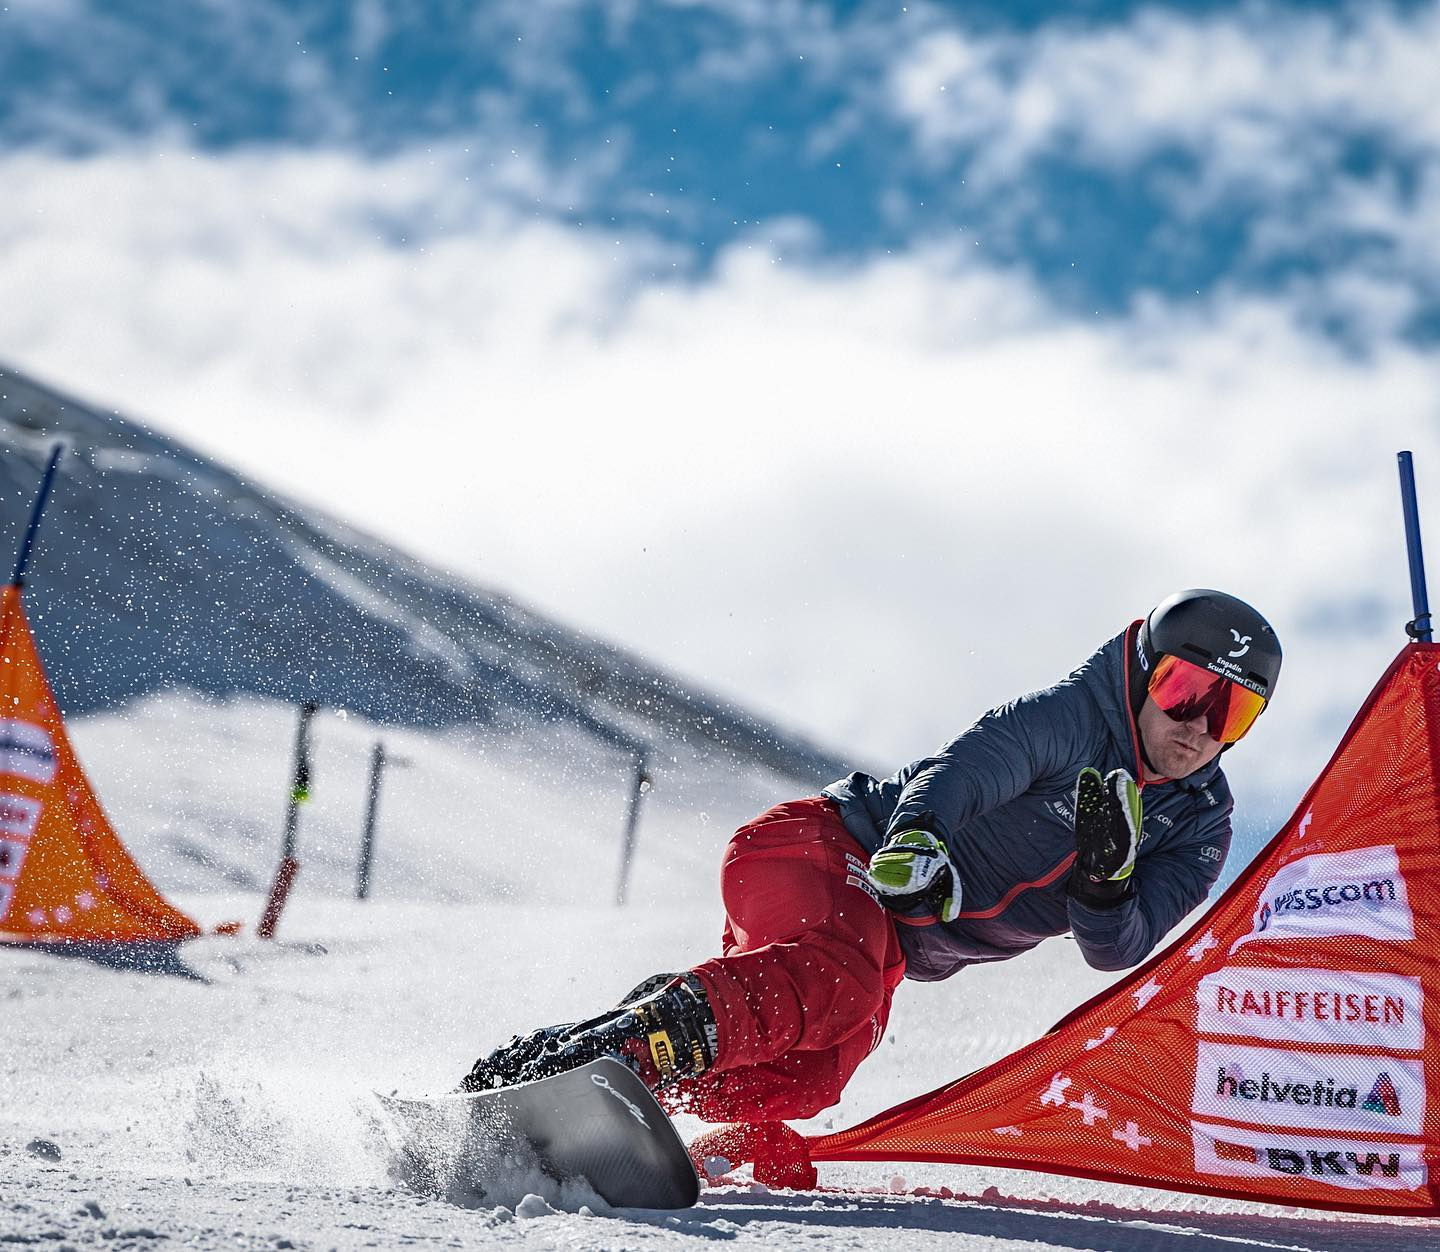 This seasons highlight is around the corner: Coming Saturday on January 9th I'll compete at the Worldcup in Scuol 🥳 . Due to Corona there are no spectators at the venue unfortunately, but the race will be on @srfsport to watch! . After missing my home race in the last two years (which broke my heart) I am incredibly excited to be at the start again 🤘🏽 @engadinscuolzernez